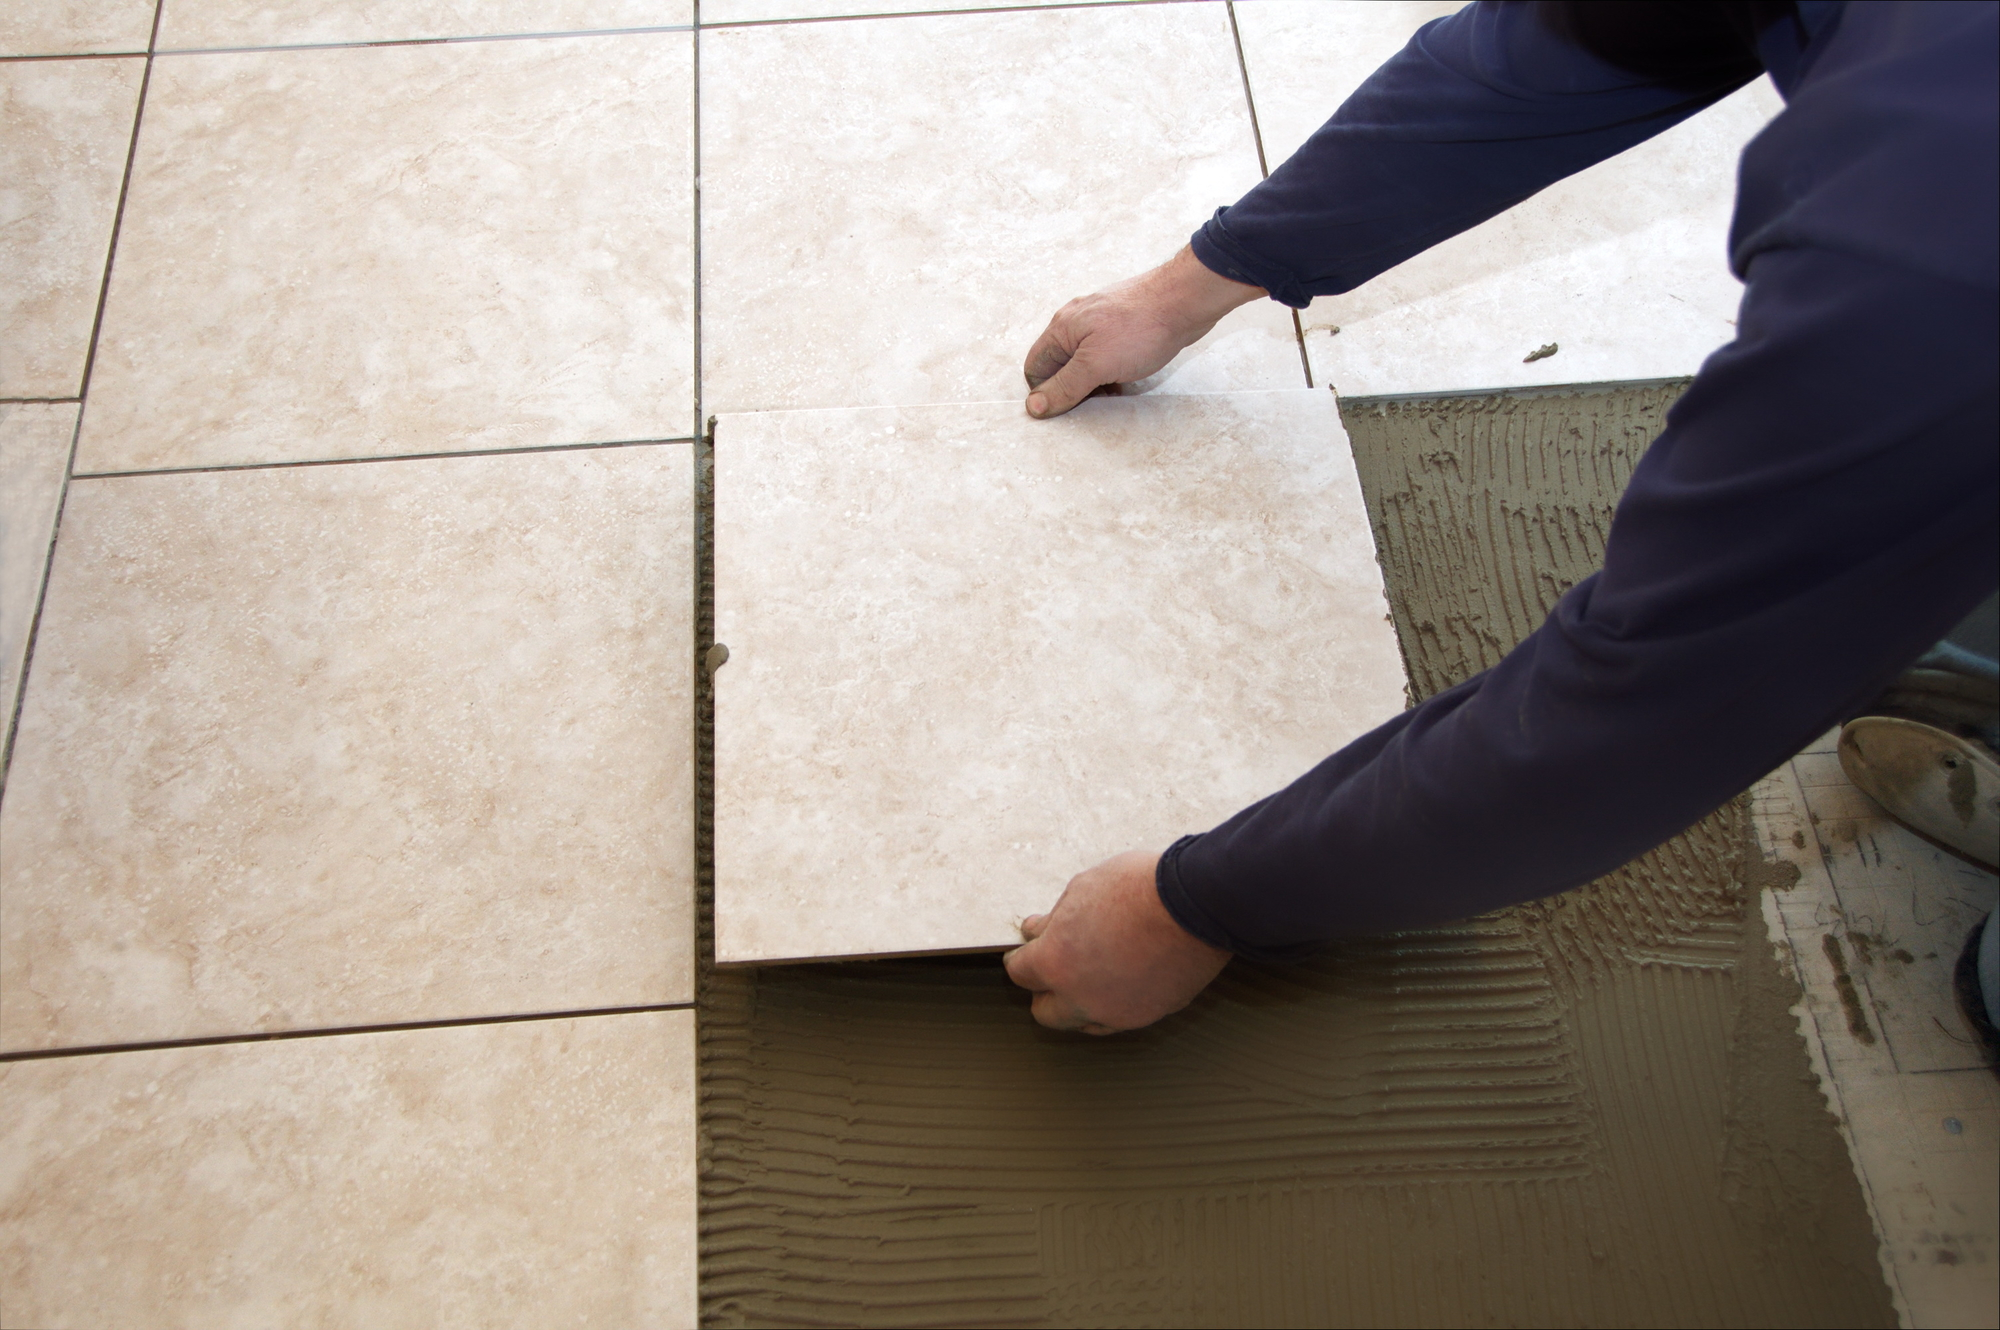 Delighted 12X24 Floor Tile Thin 12X24 Tile Floor Clean 18 X 18 Floor Tile 1950S Floor Tiles Old 1X1 Ceiling Tiles Black24X24 Floor Tile How Much Does It Cost To Buy \u0026 Install Ceramic Tile?   Georgia ..